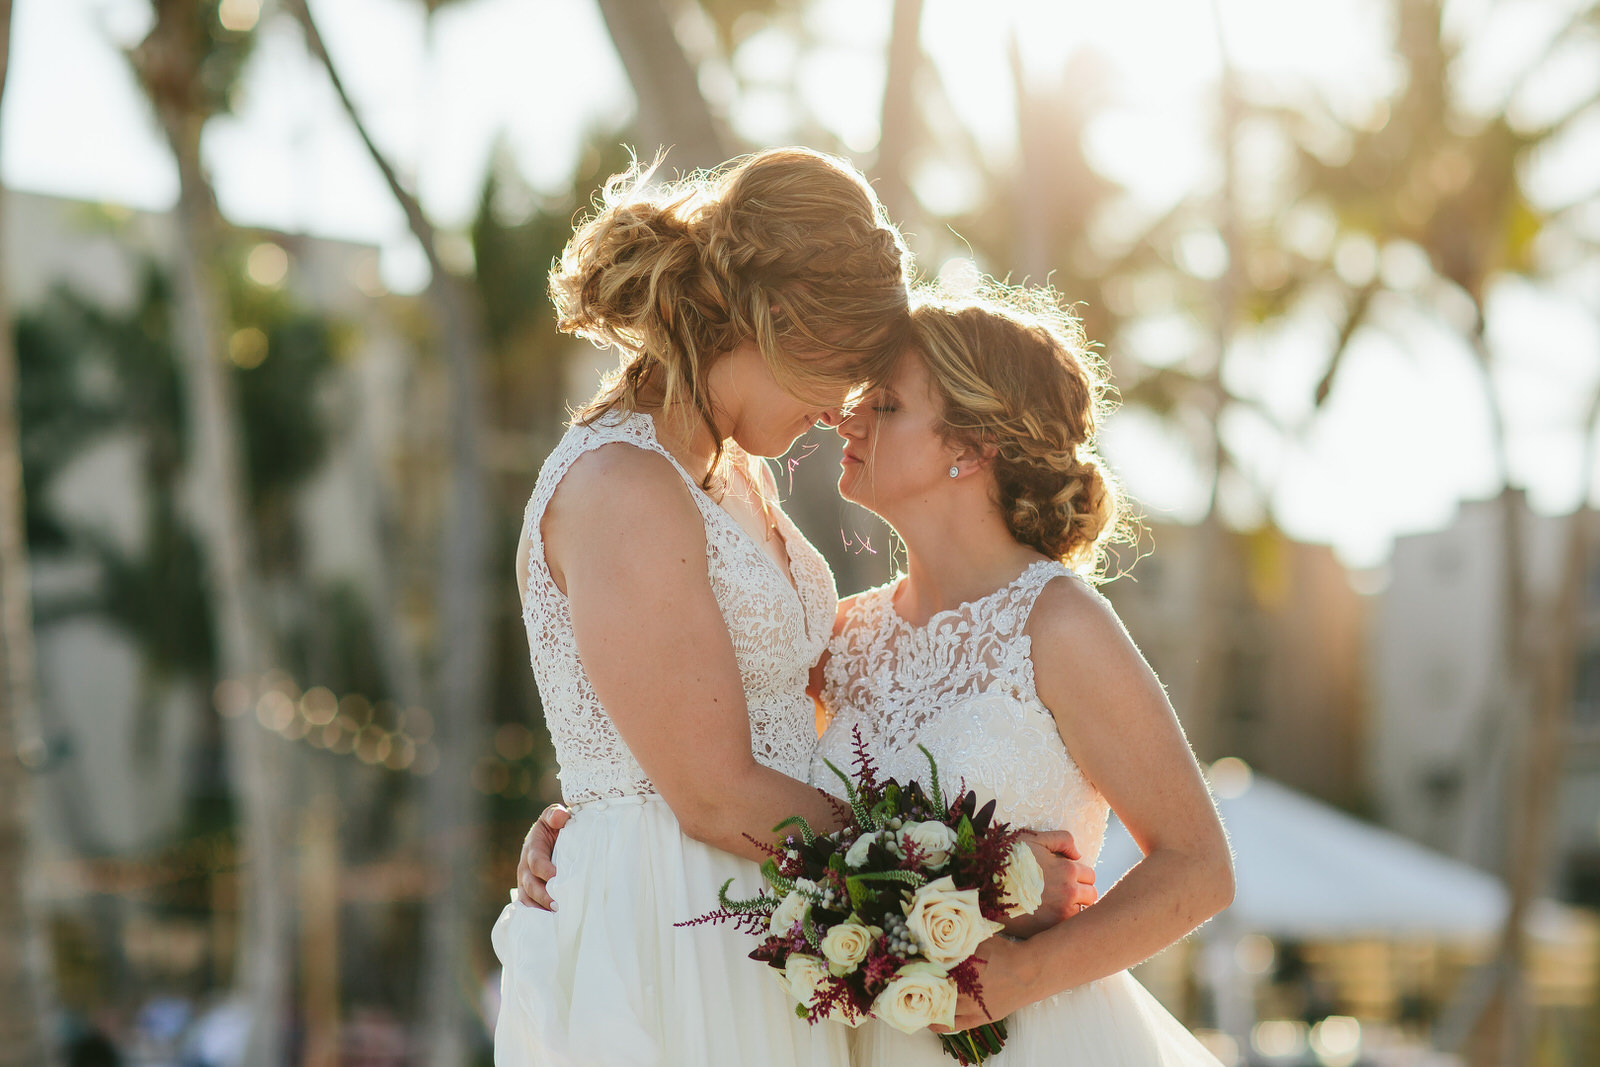 brides_embrace_beautiful_love_lgbtq_wedding.jpg